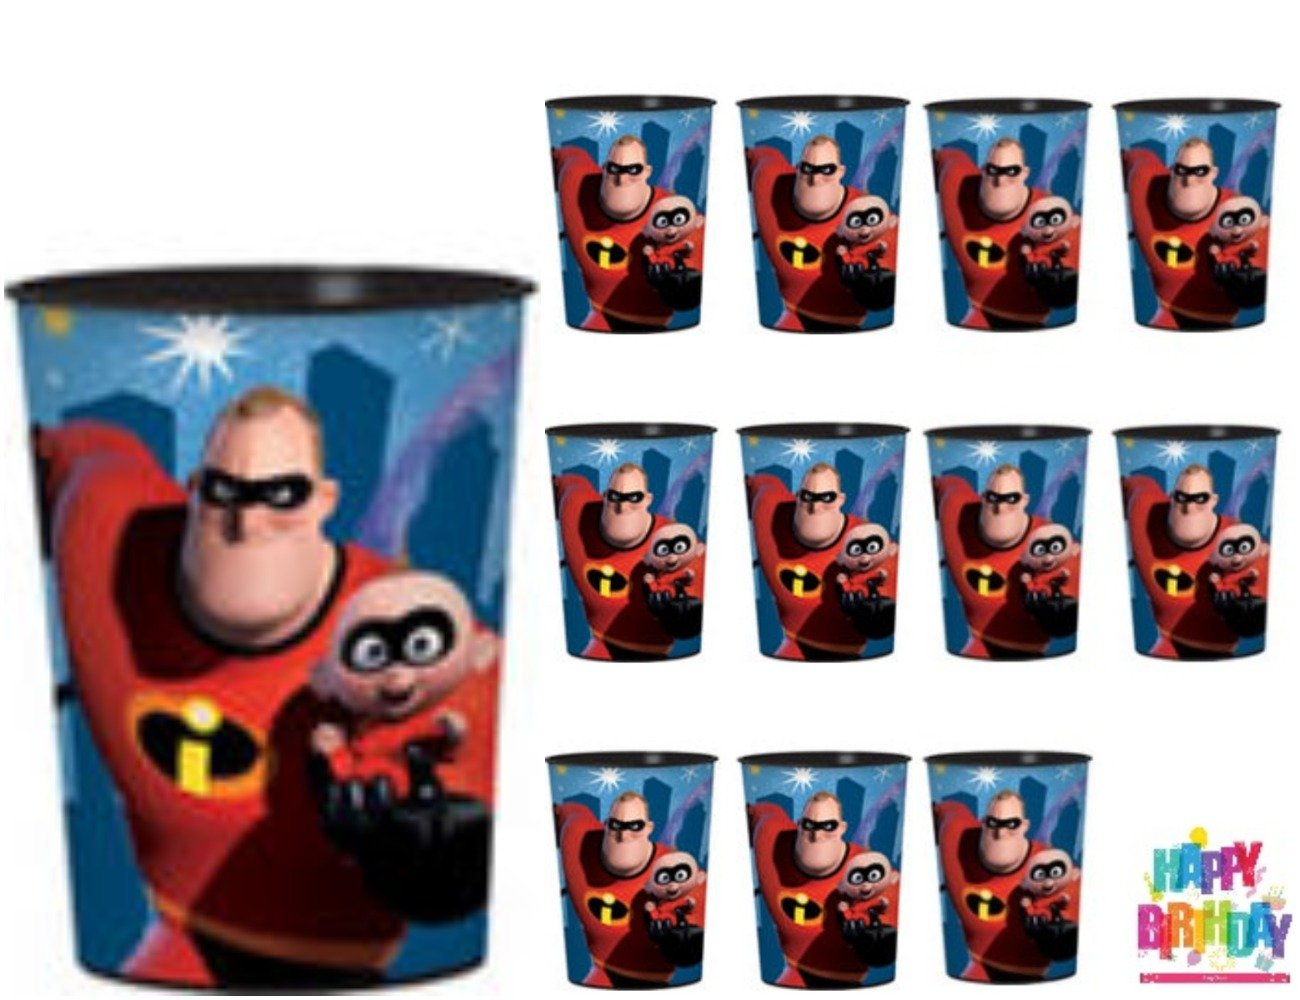 12 - Incredibles 2 Birthday Party Favor Plastic Cups (16oz), and 1 Heydays Happy Birthday Tattoo